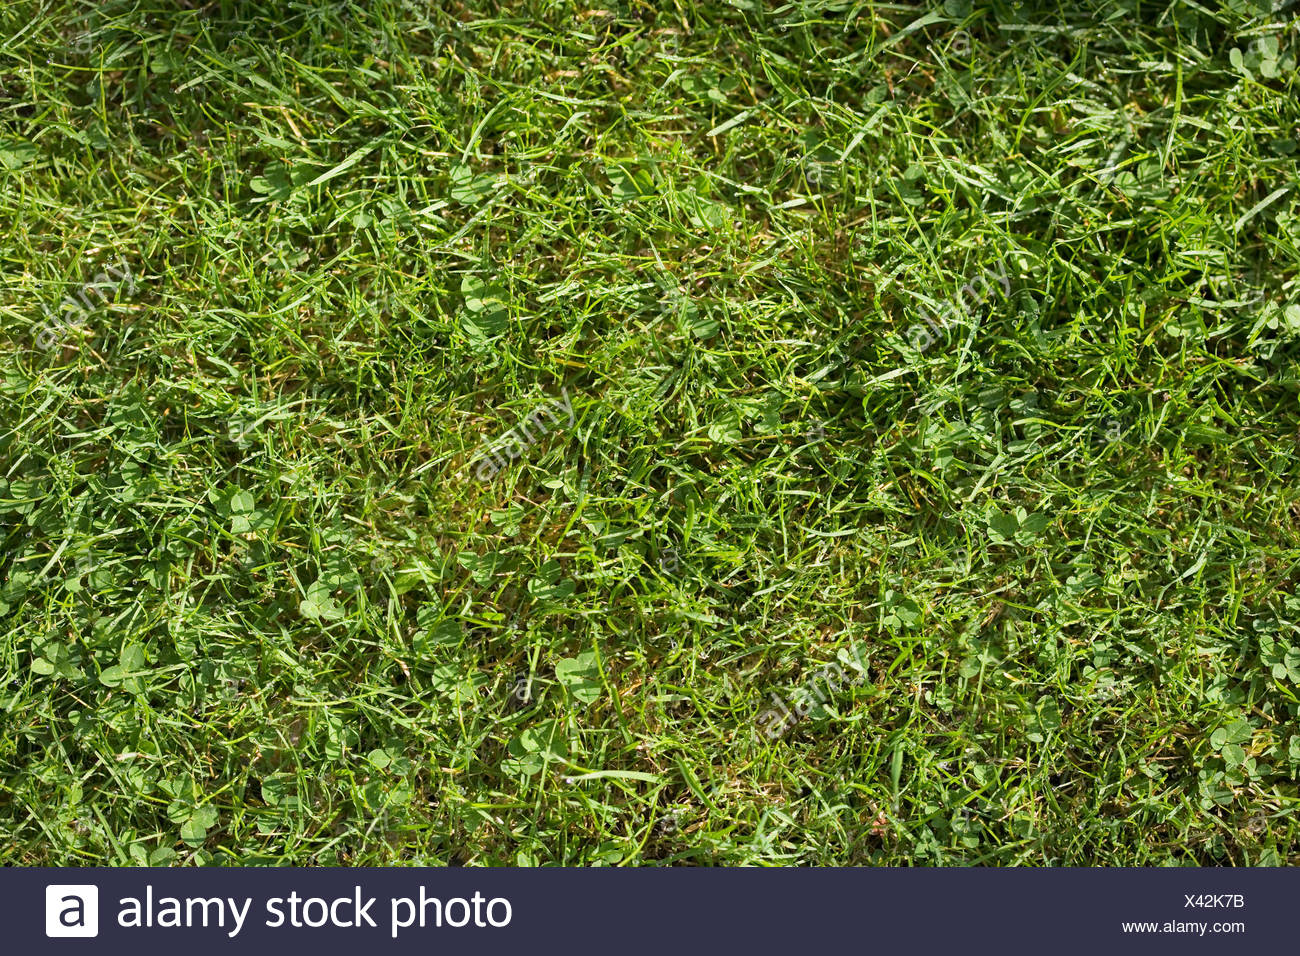 A section of grass lawn, view from above Stock Photo